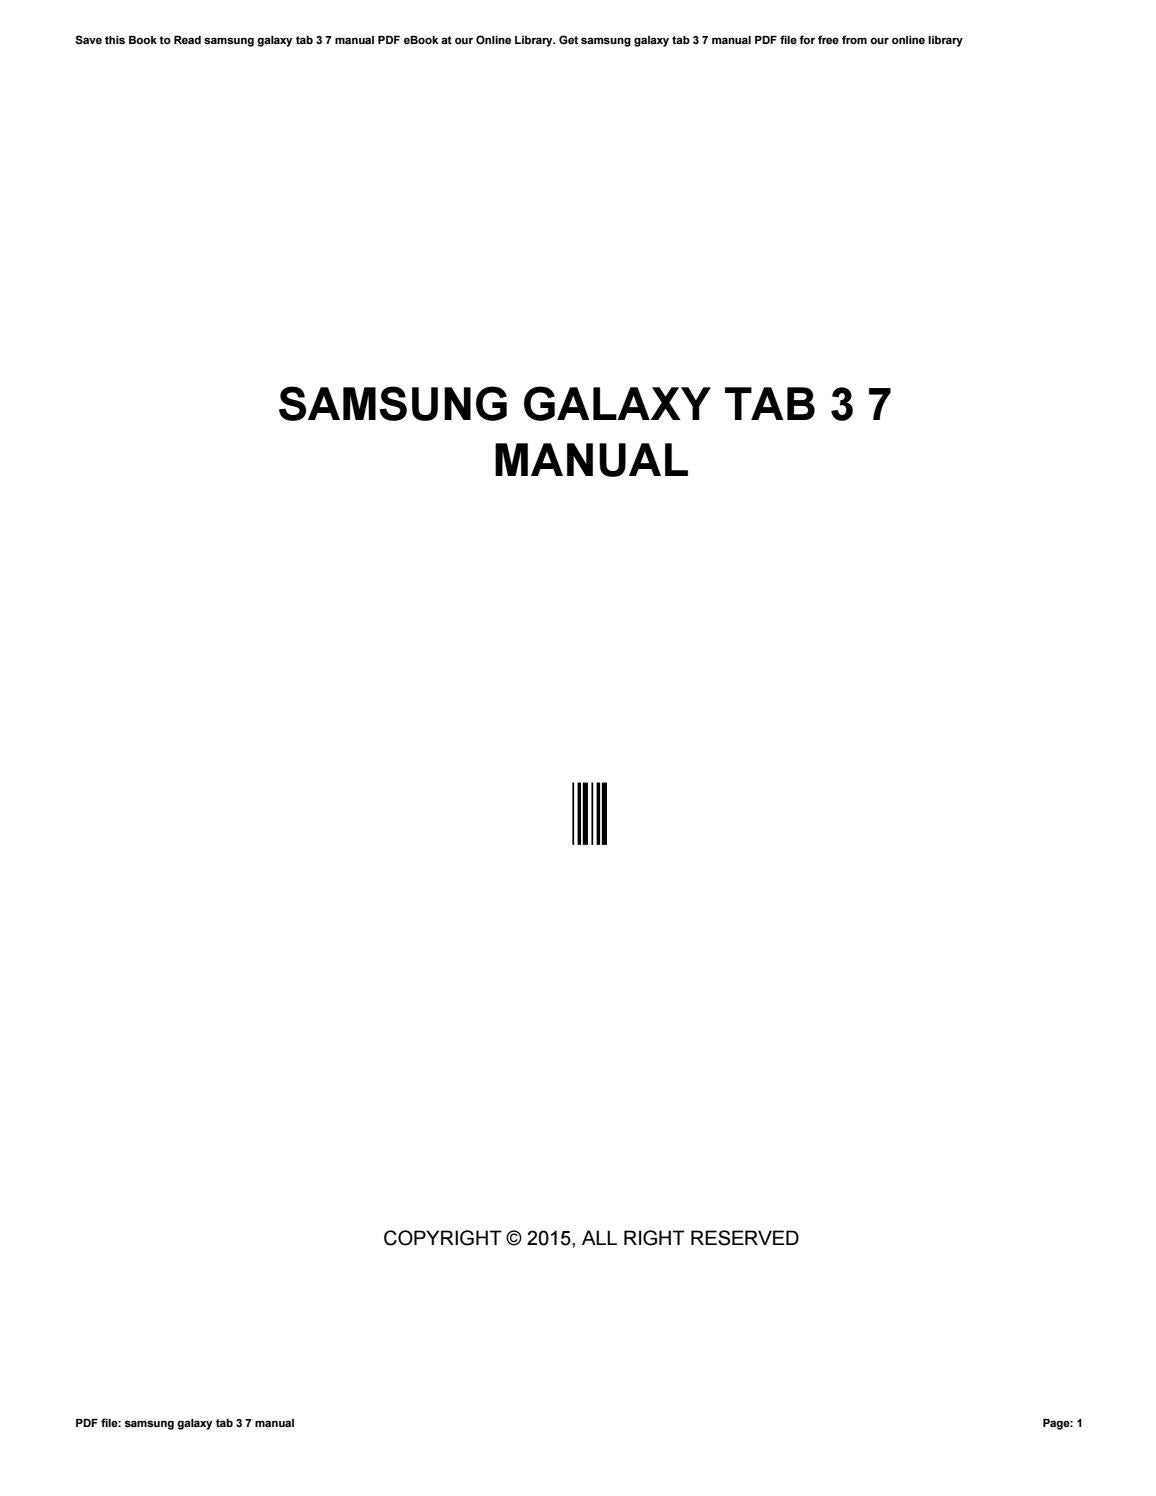 How To Pdf File To Samsung Tablet